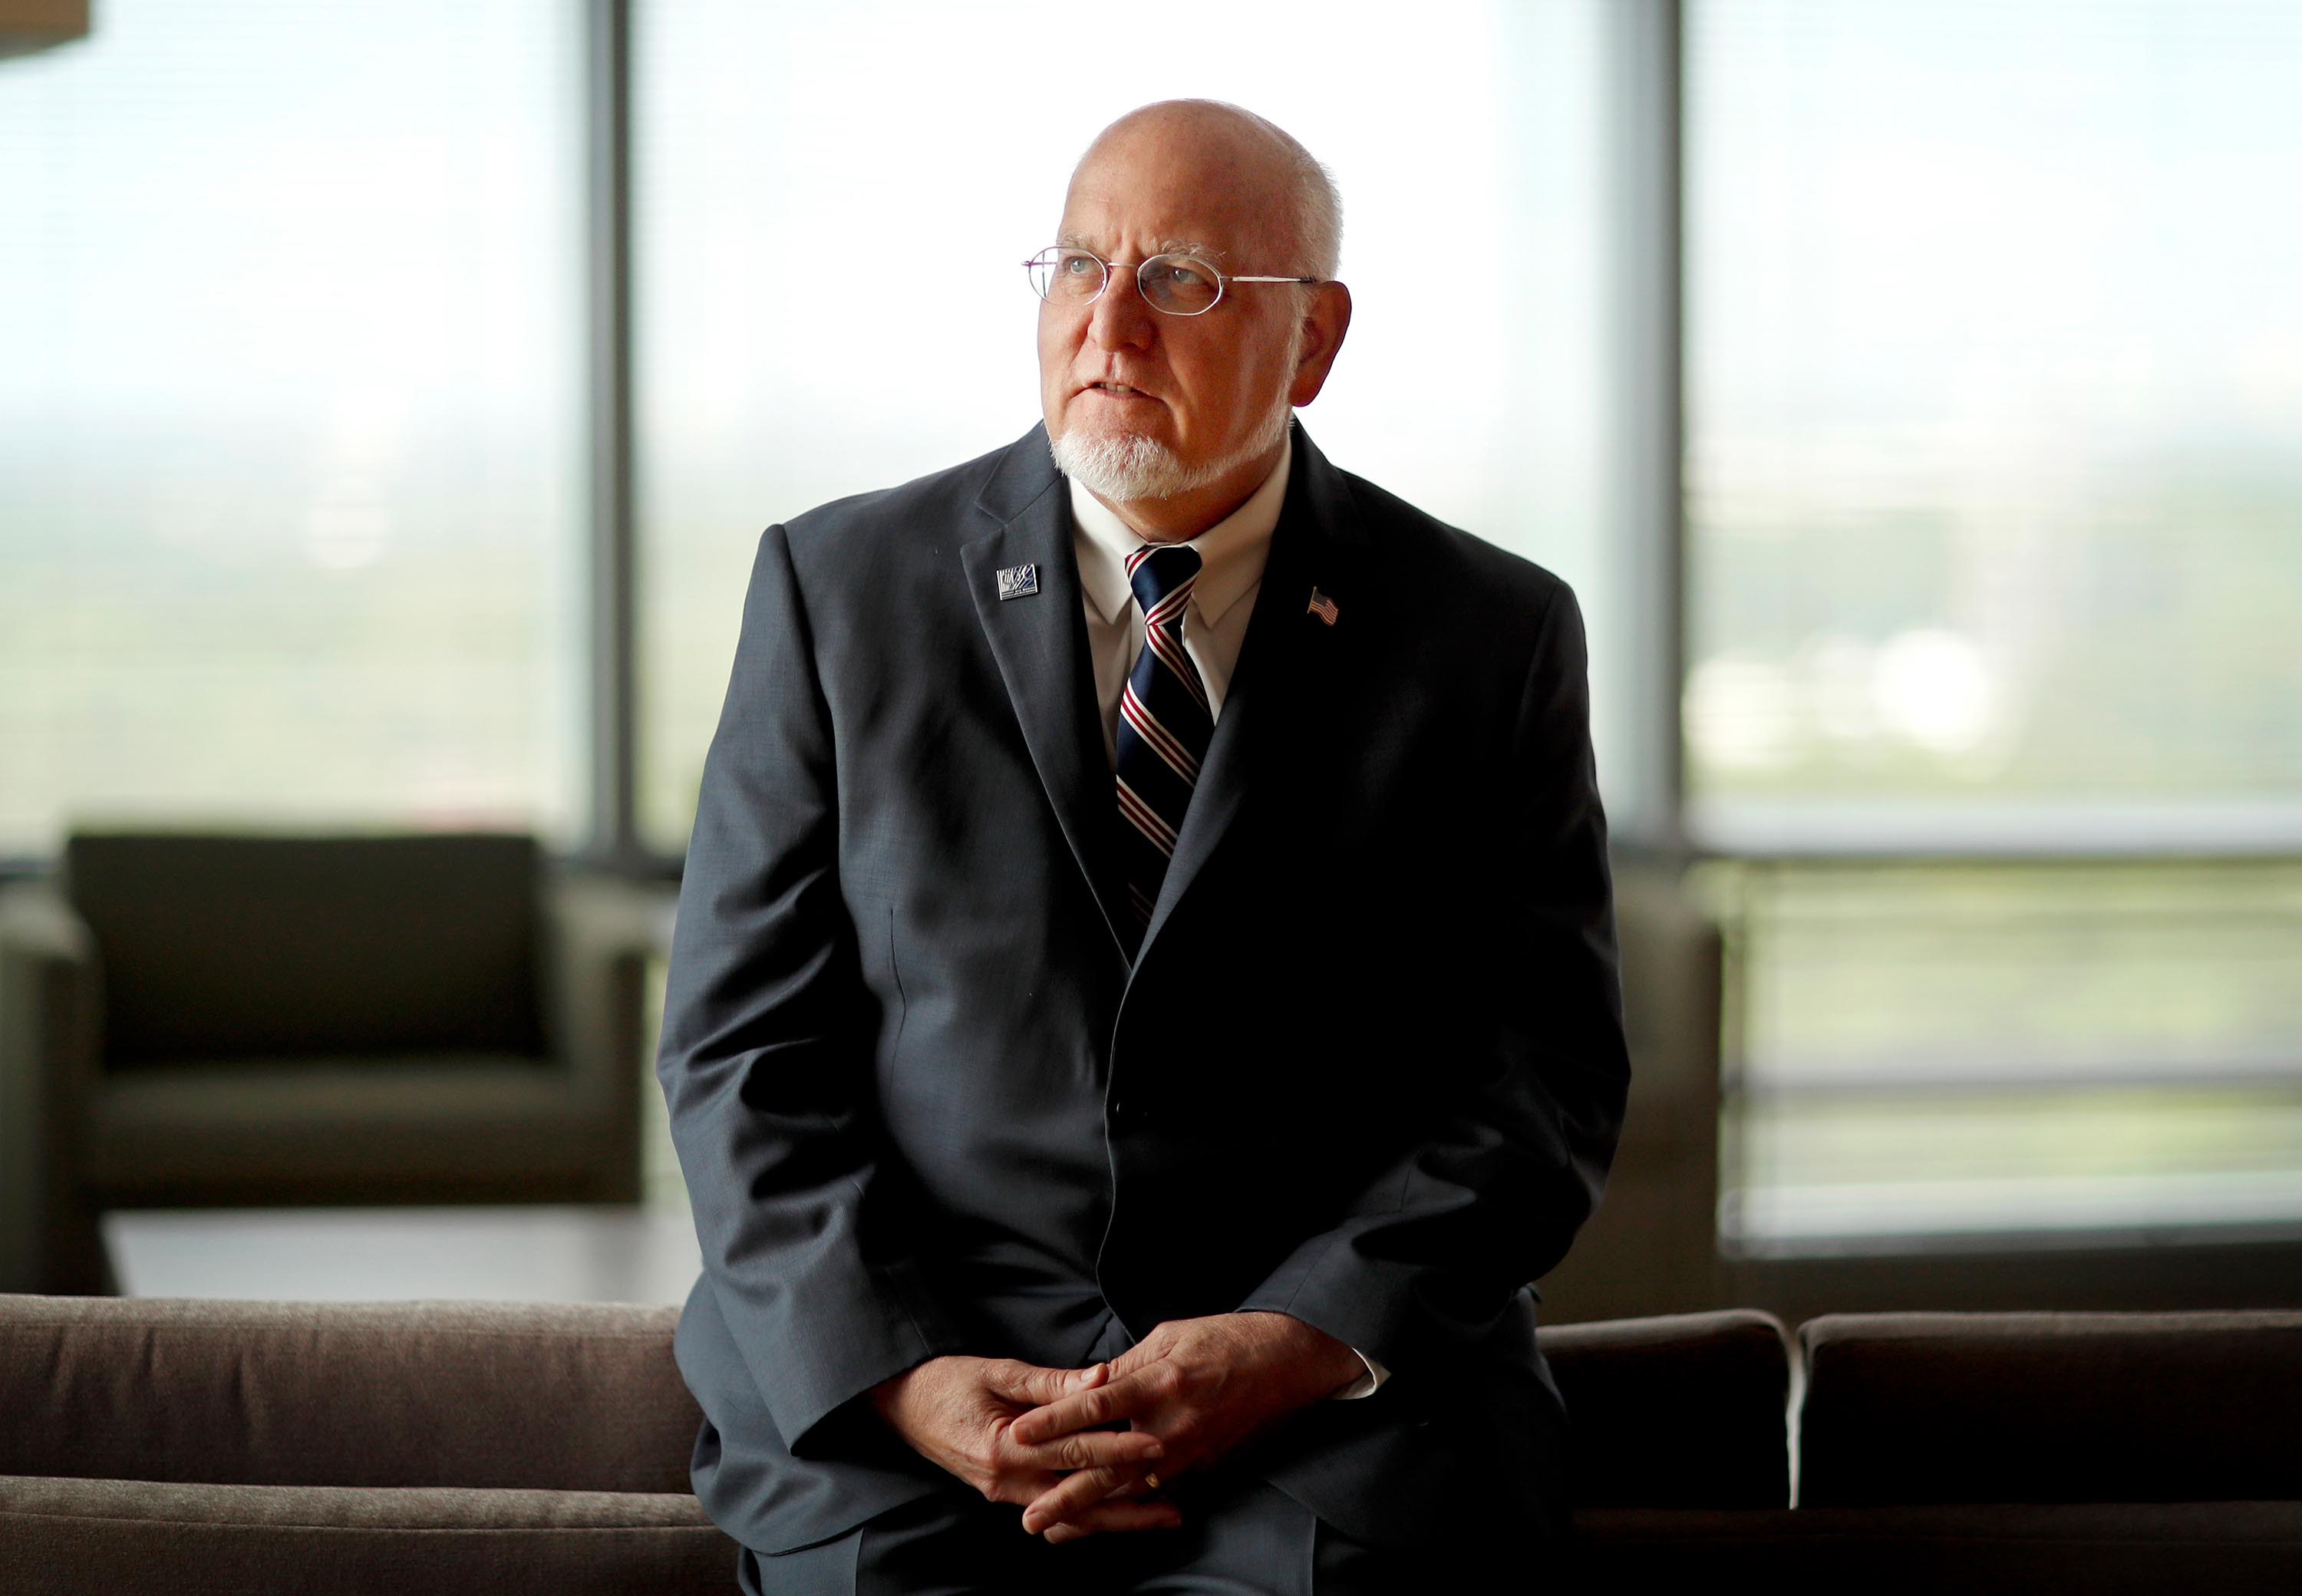 CDC woes bring Director Redfield's troubled past as an AIDS researcher to light